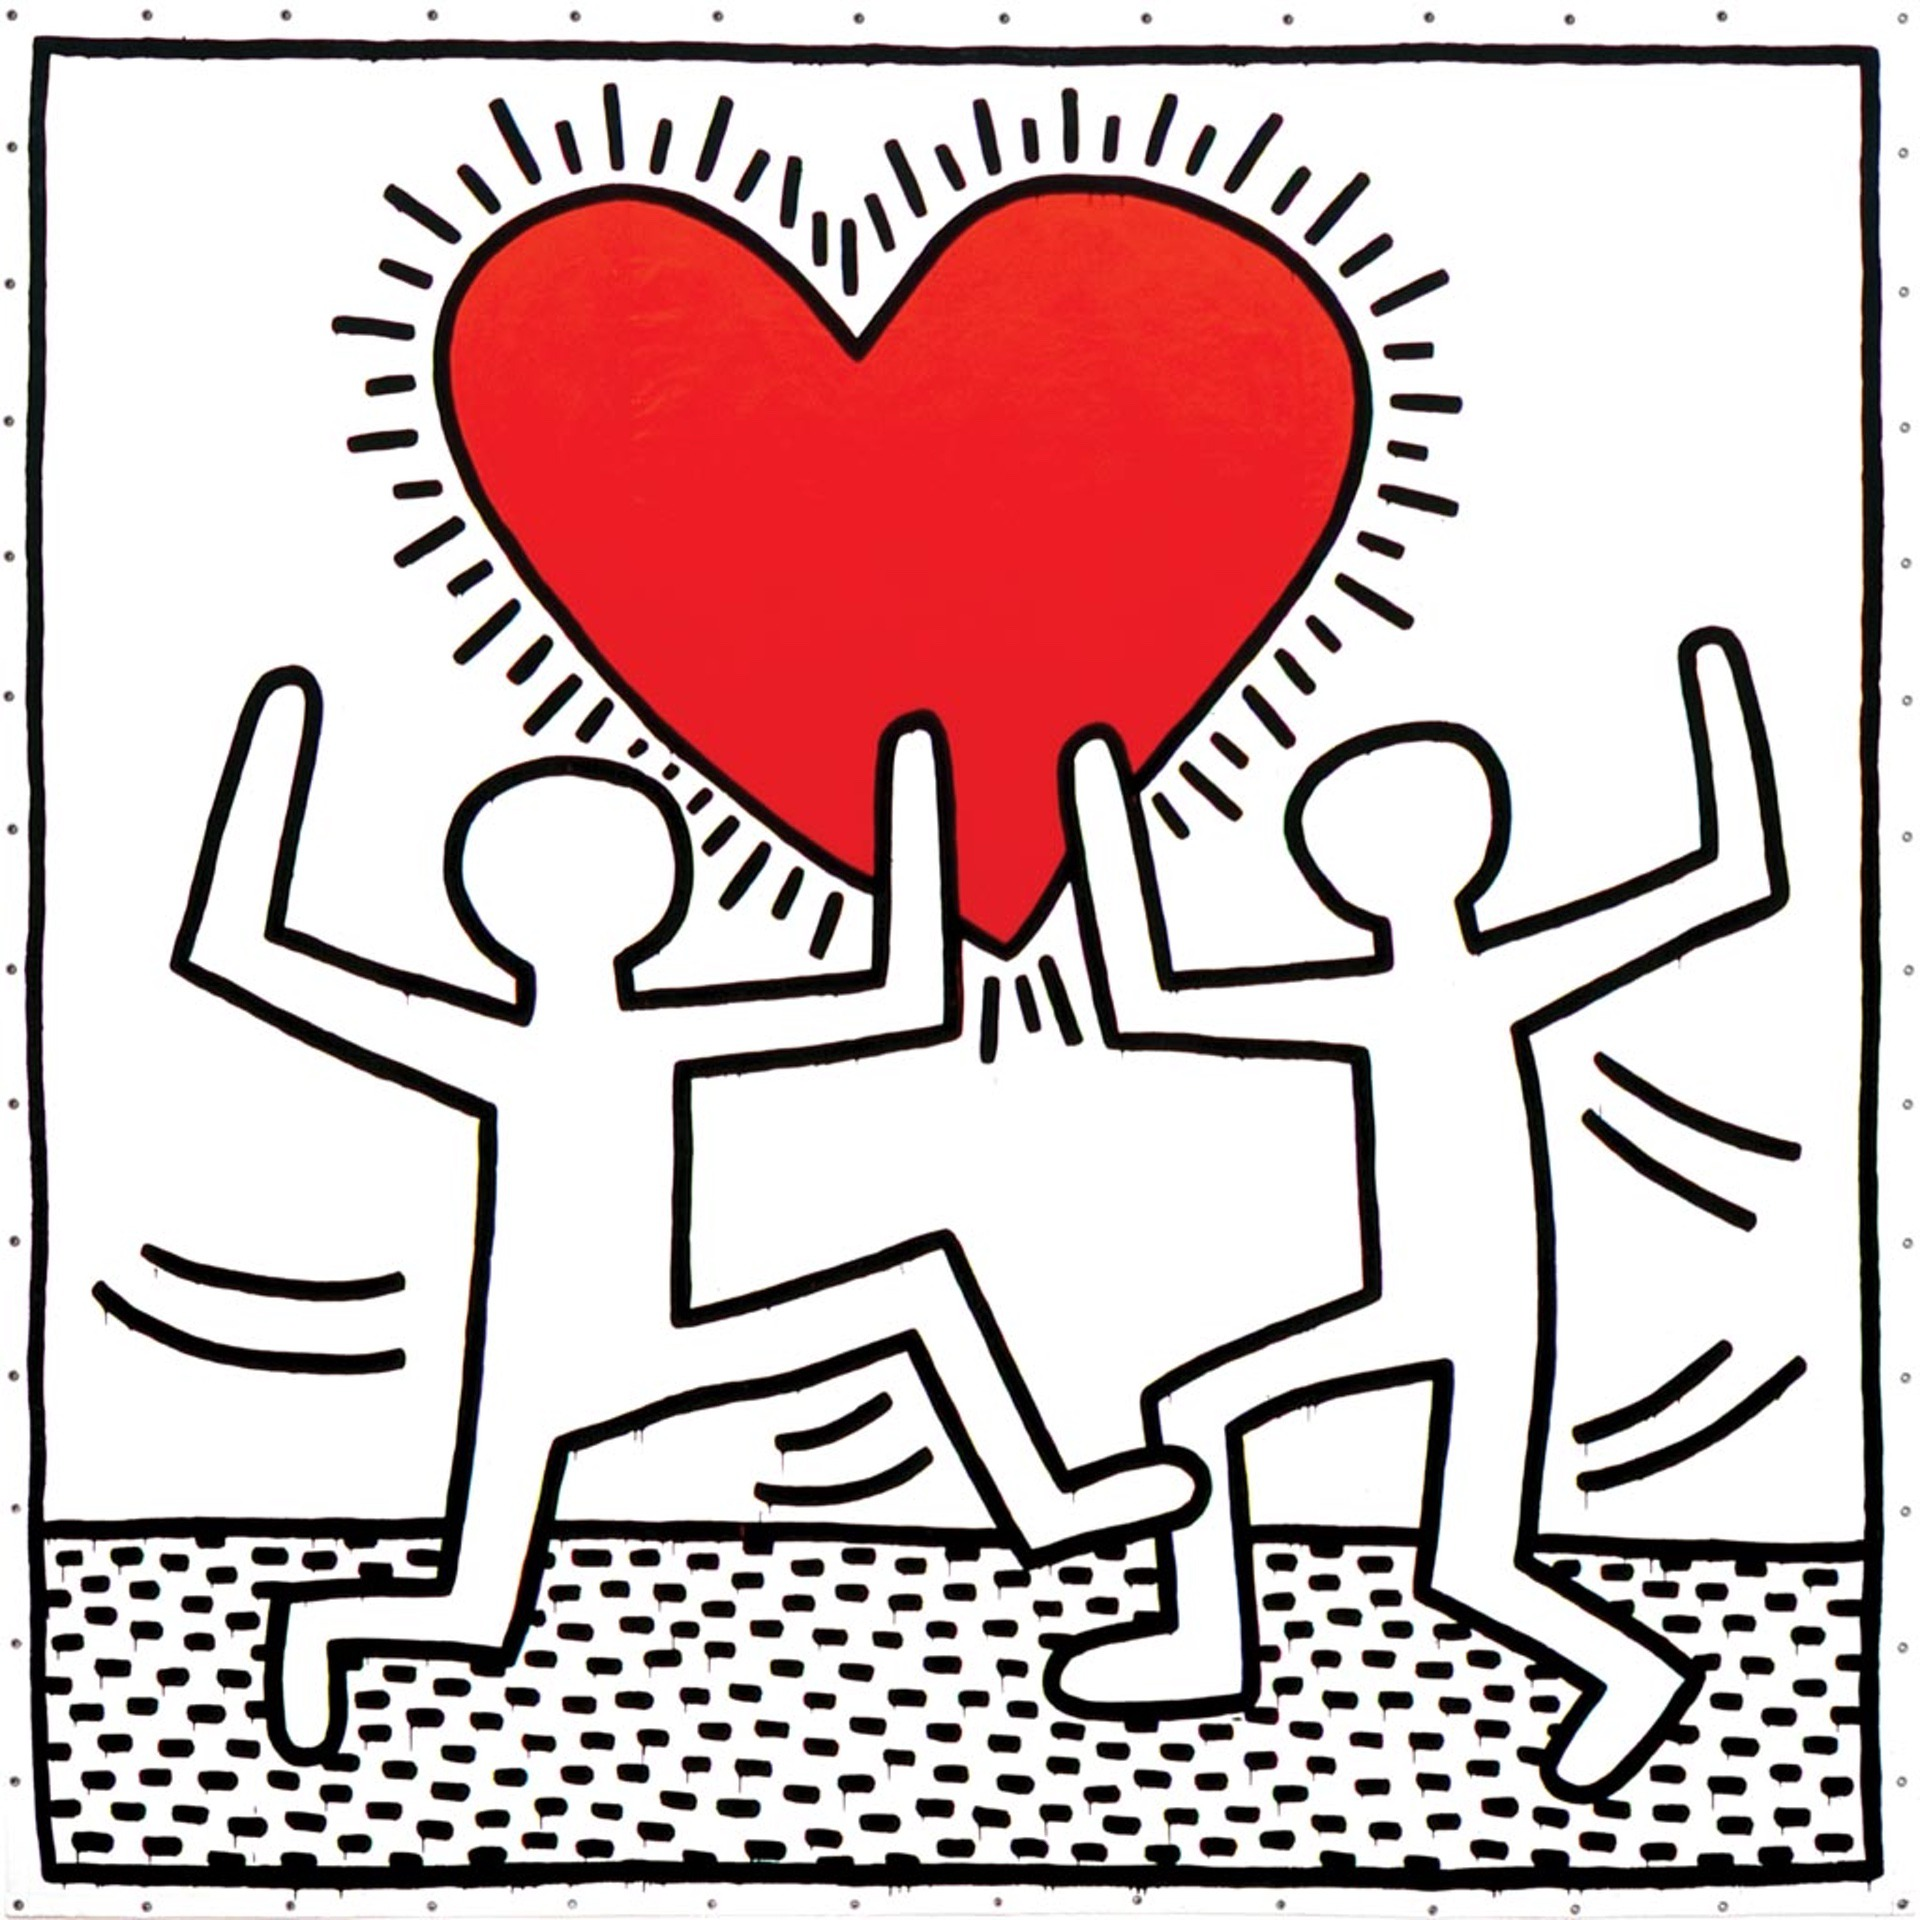 Untitled (1982) by Keith Haring - Pako Campo